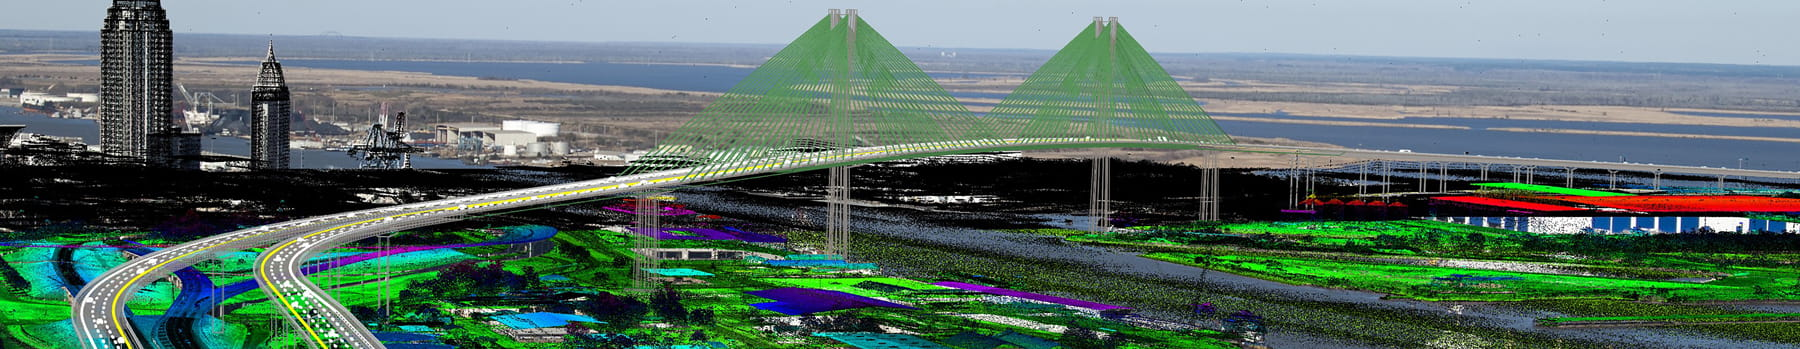 Bentley Descartes -Advanced Processing for 3D Imagery